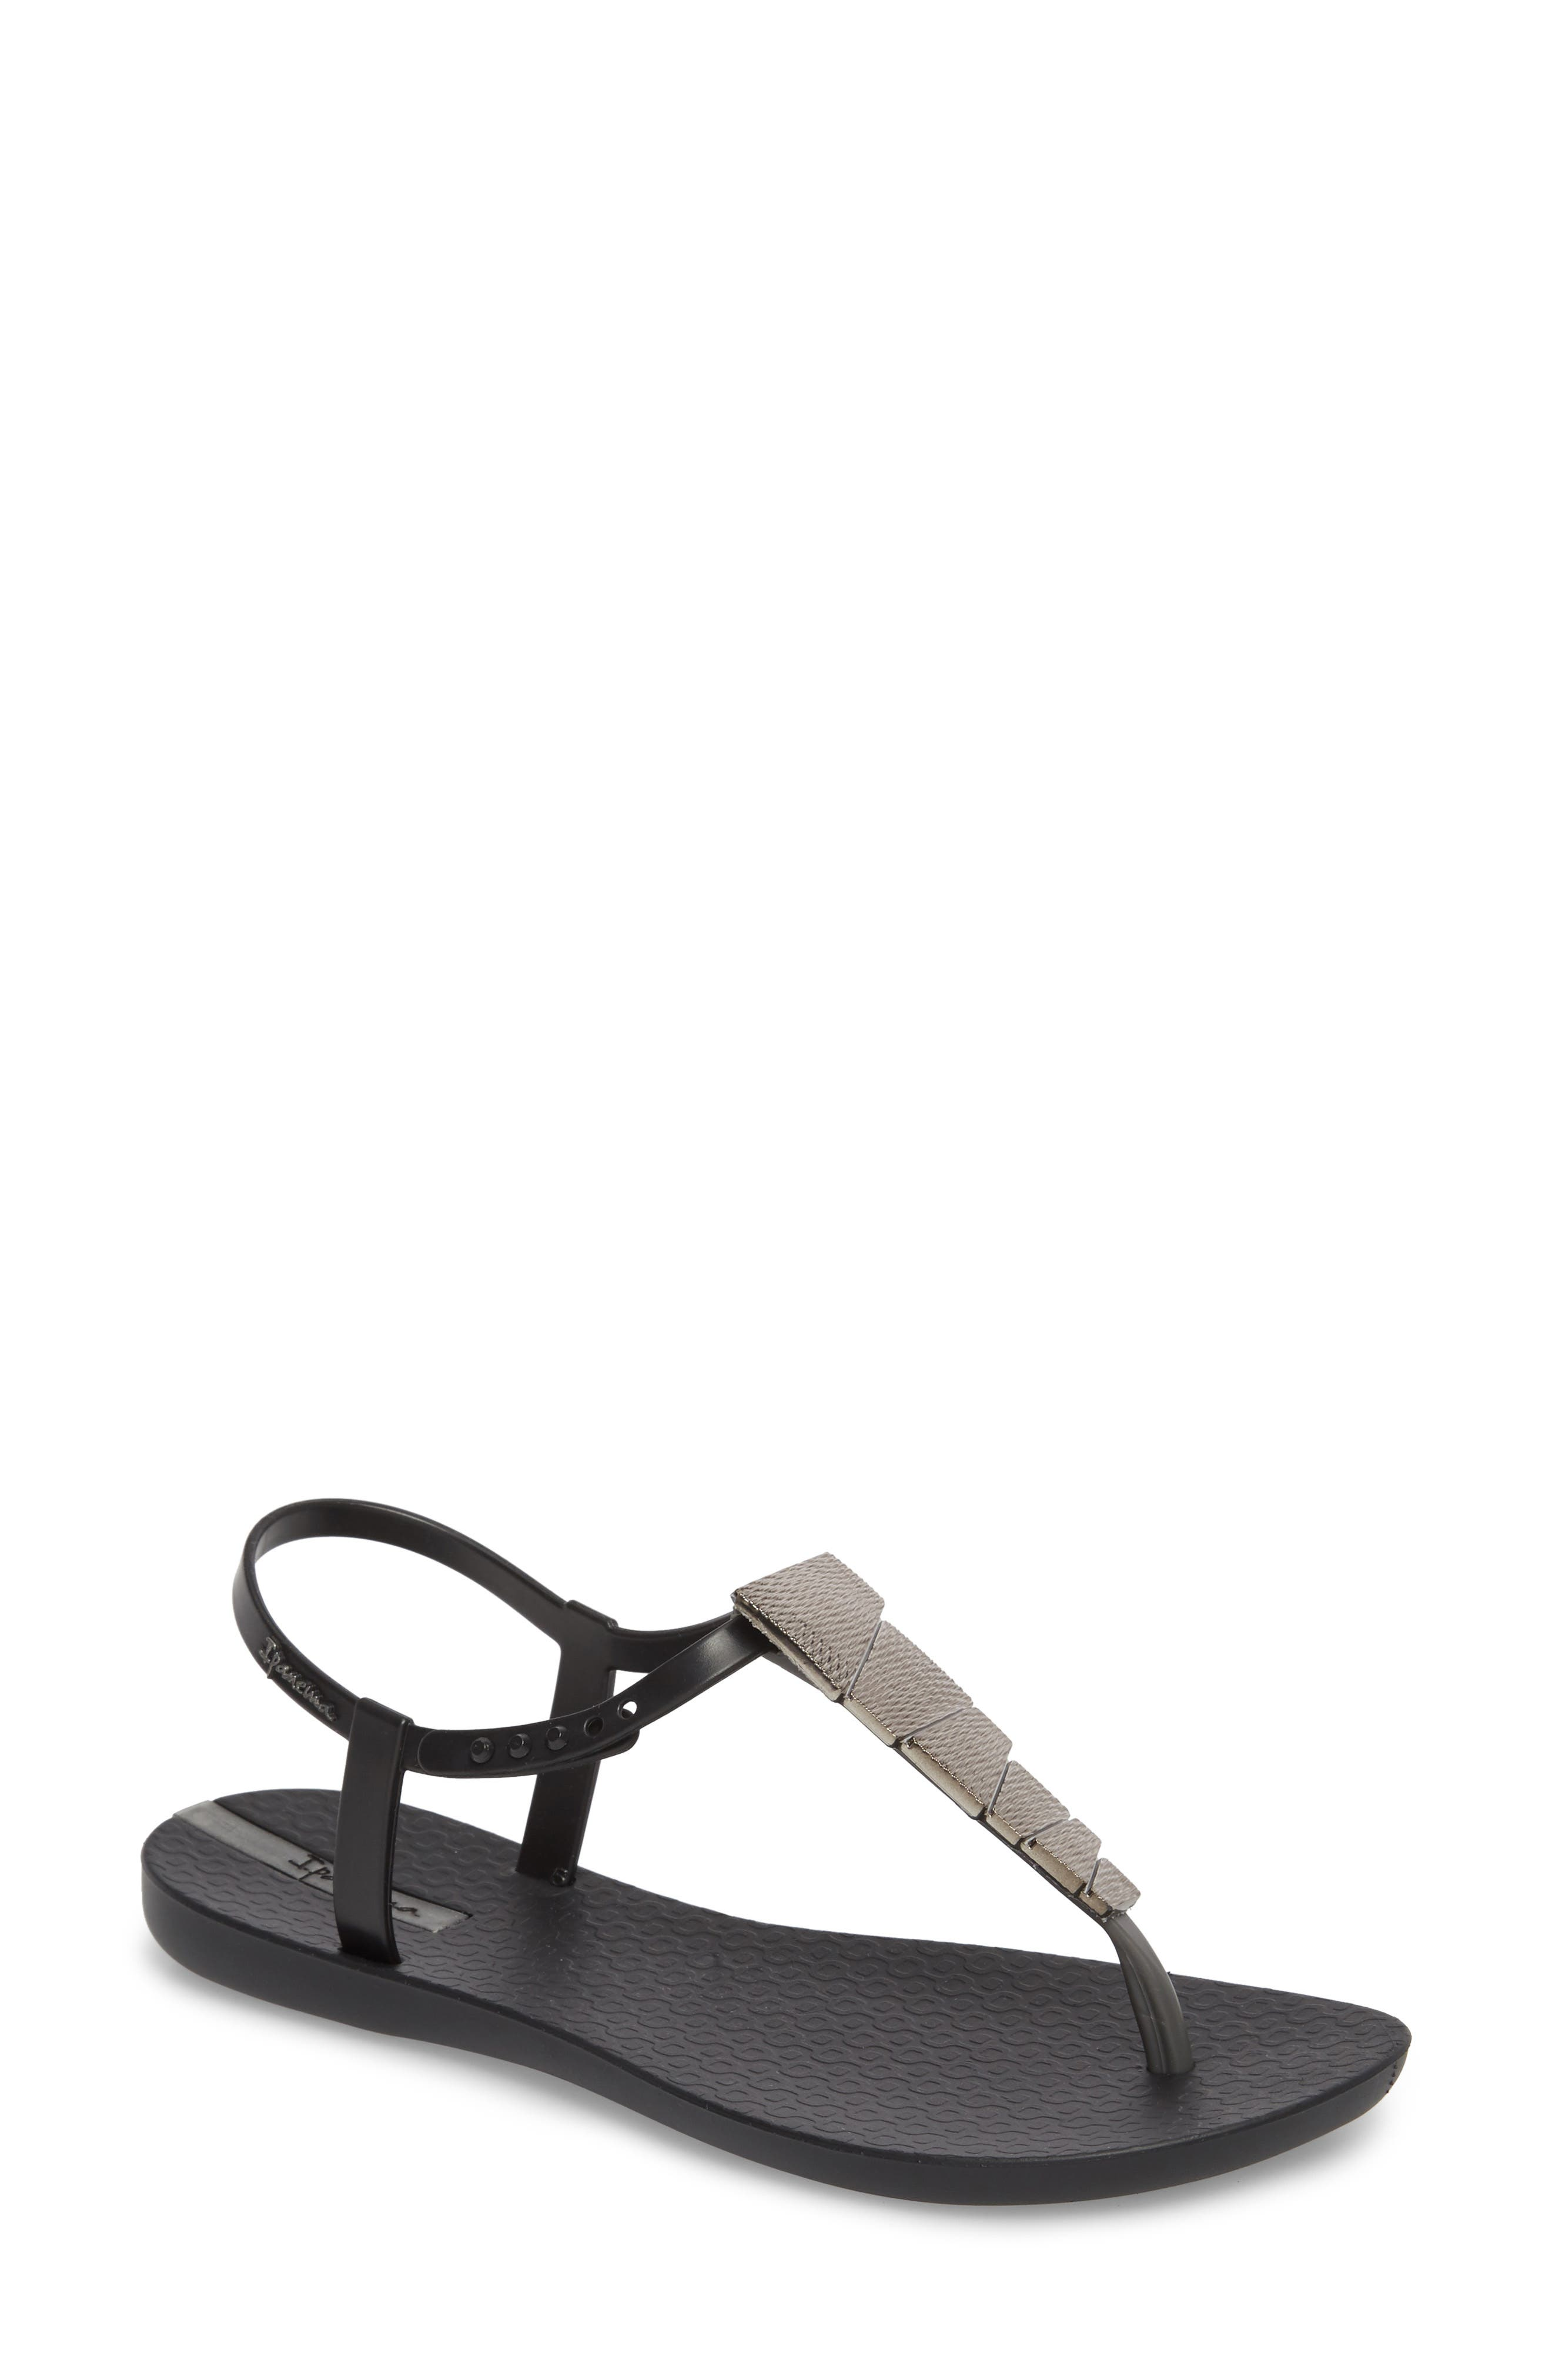 Leah Sandal,                         Main,                         color, 001